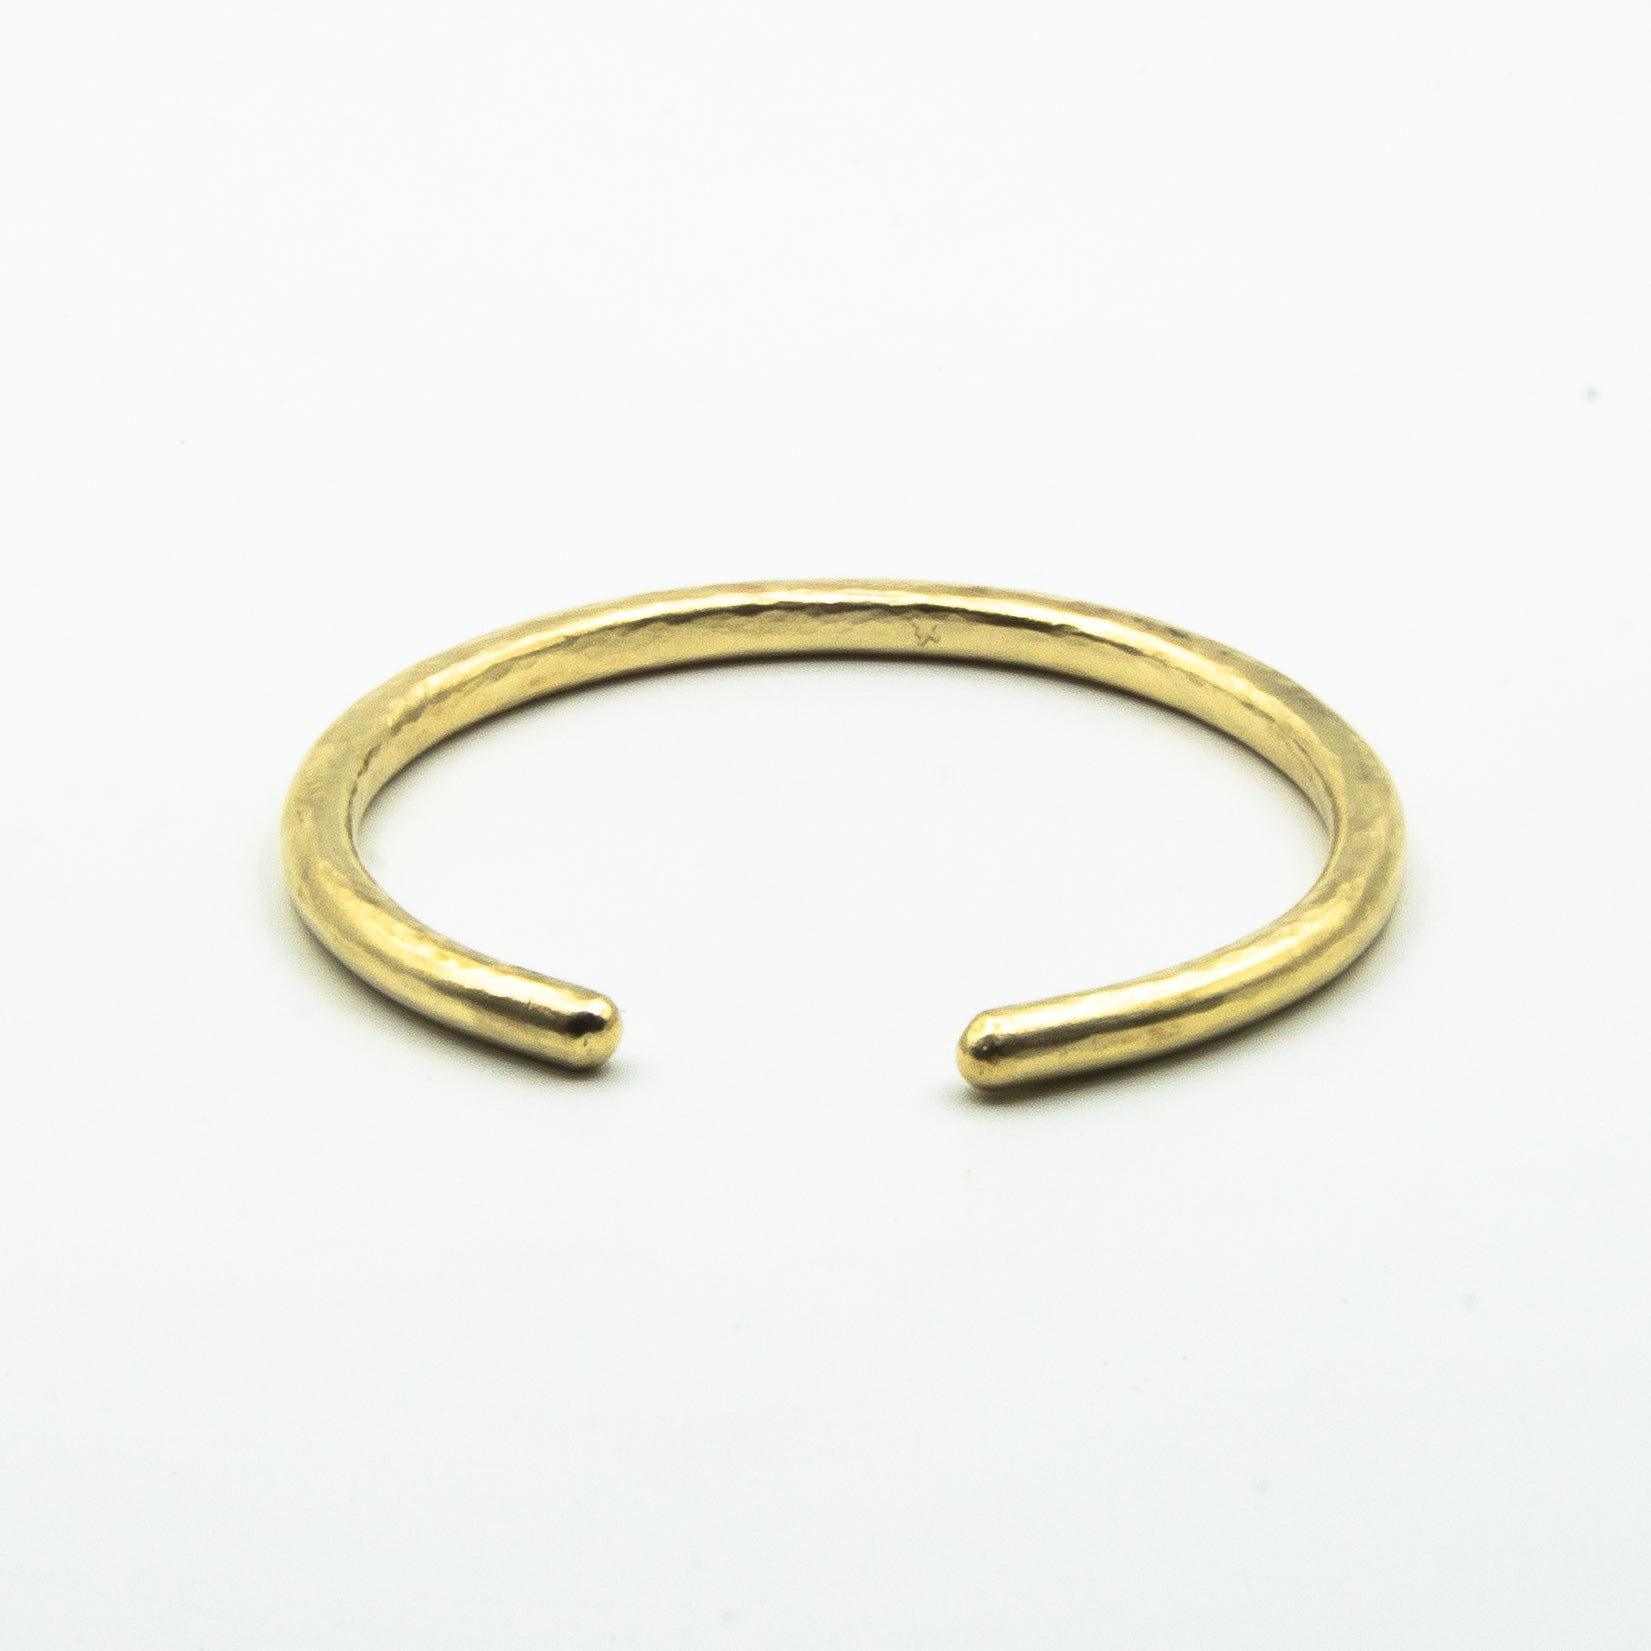 thick brass cuff front view on white background